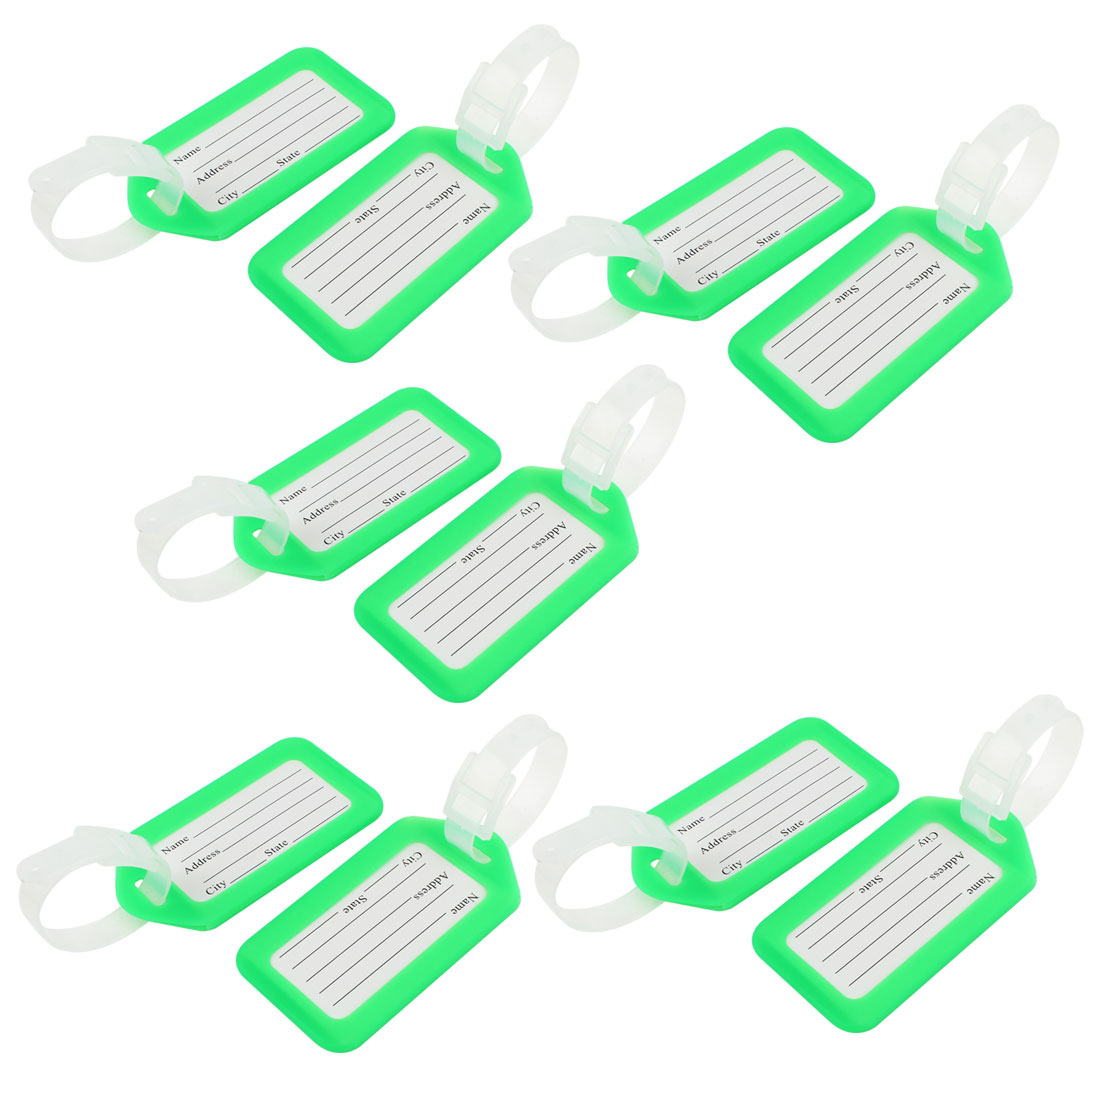 Address Message Hard Plastic Baggage Backpack Luggage Tag Green White 10 Pcs